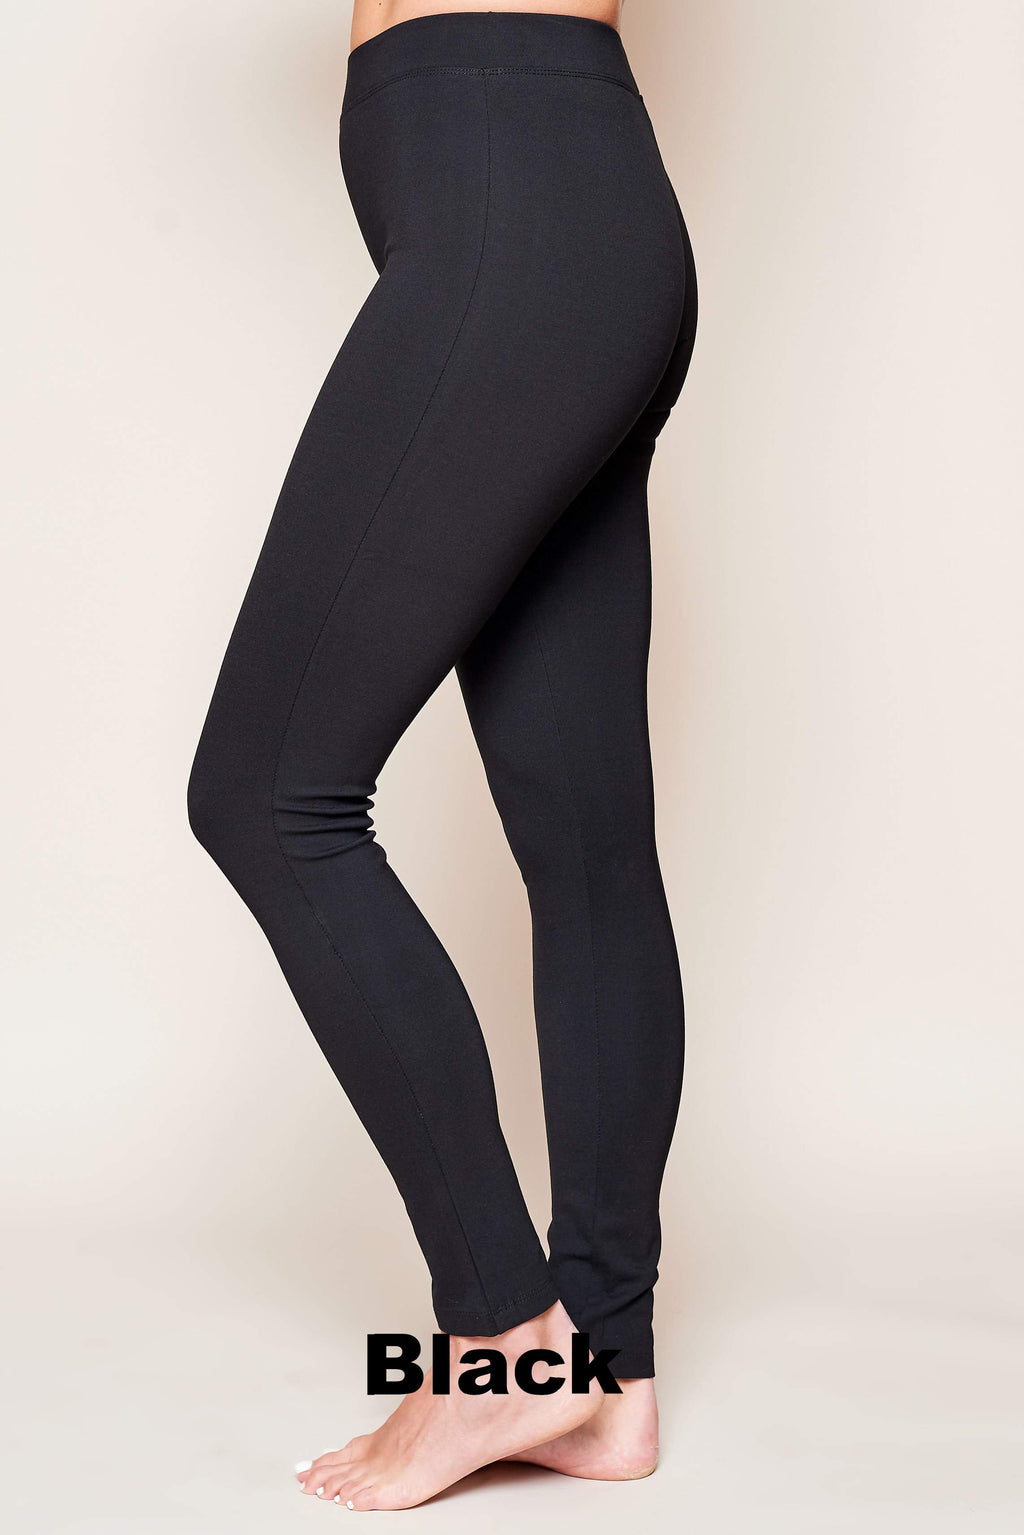 Leggings Lose 10 Lbs (Solid Colors) - Jacqueline B Clothing